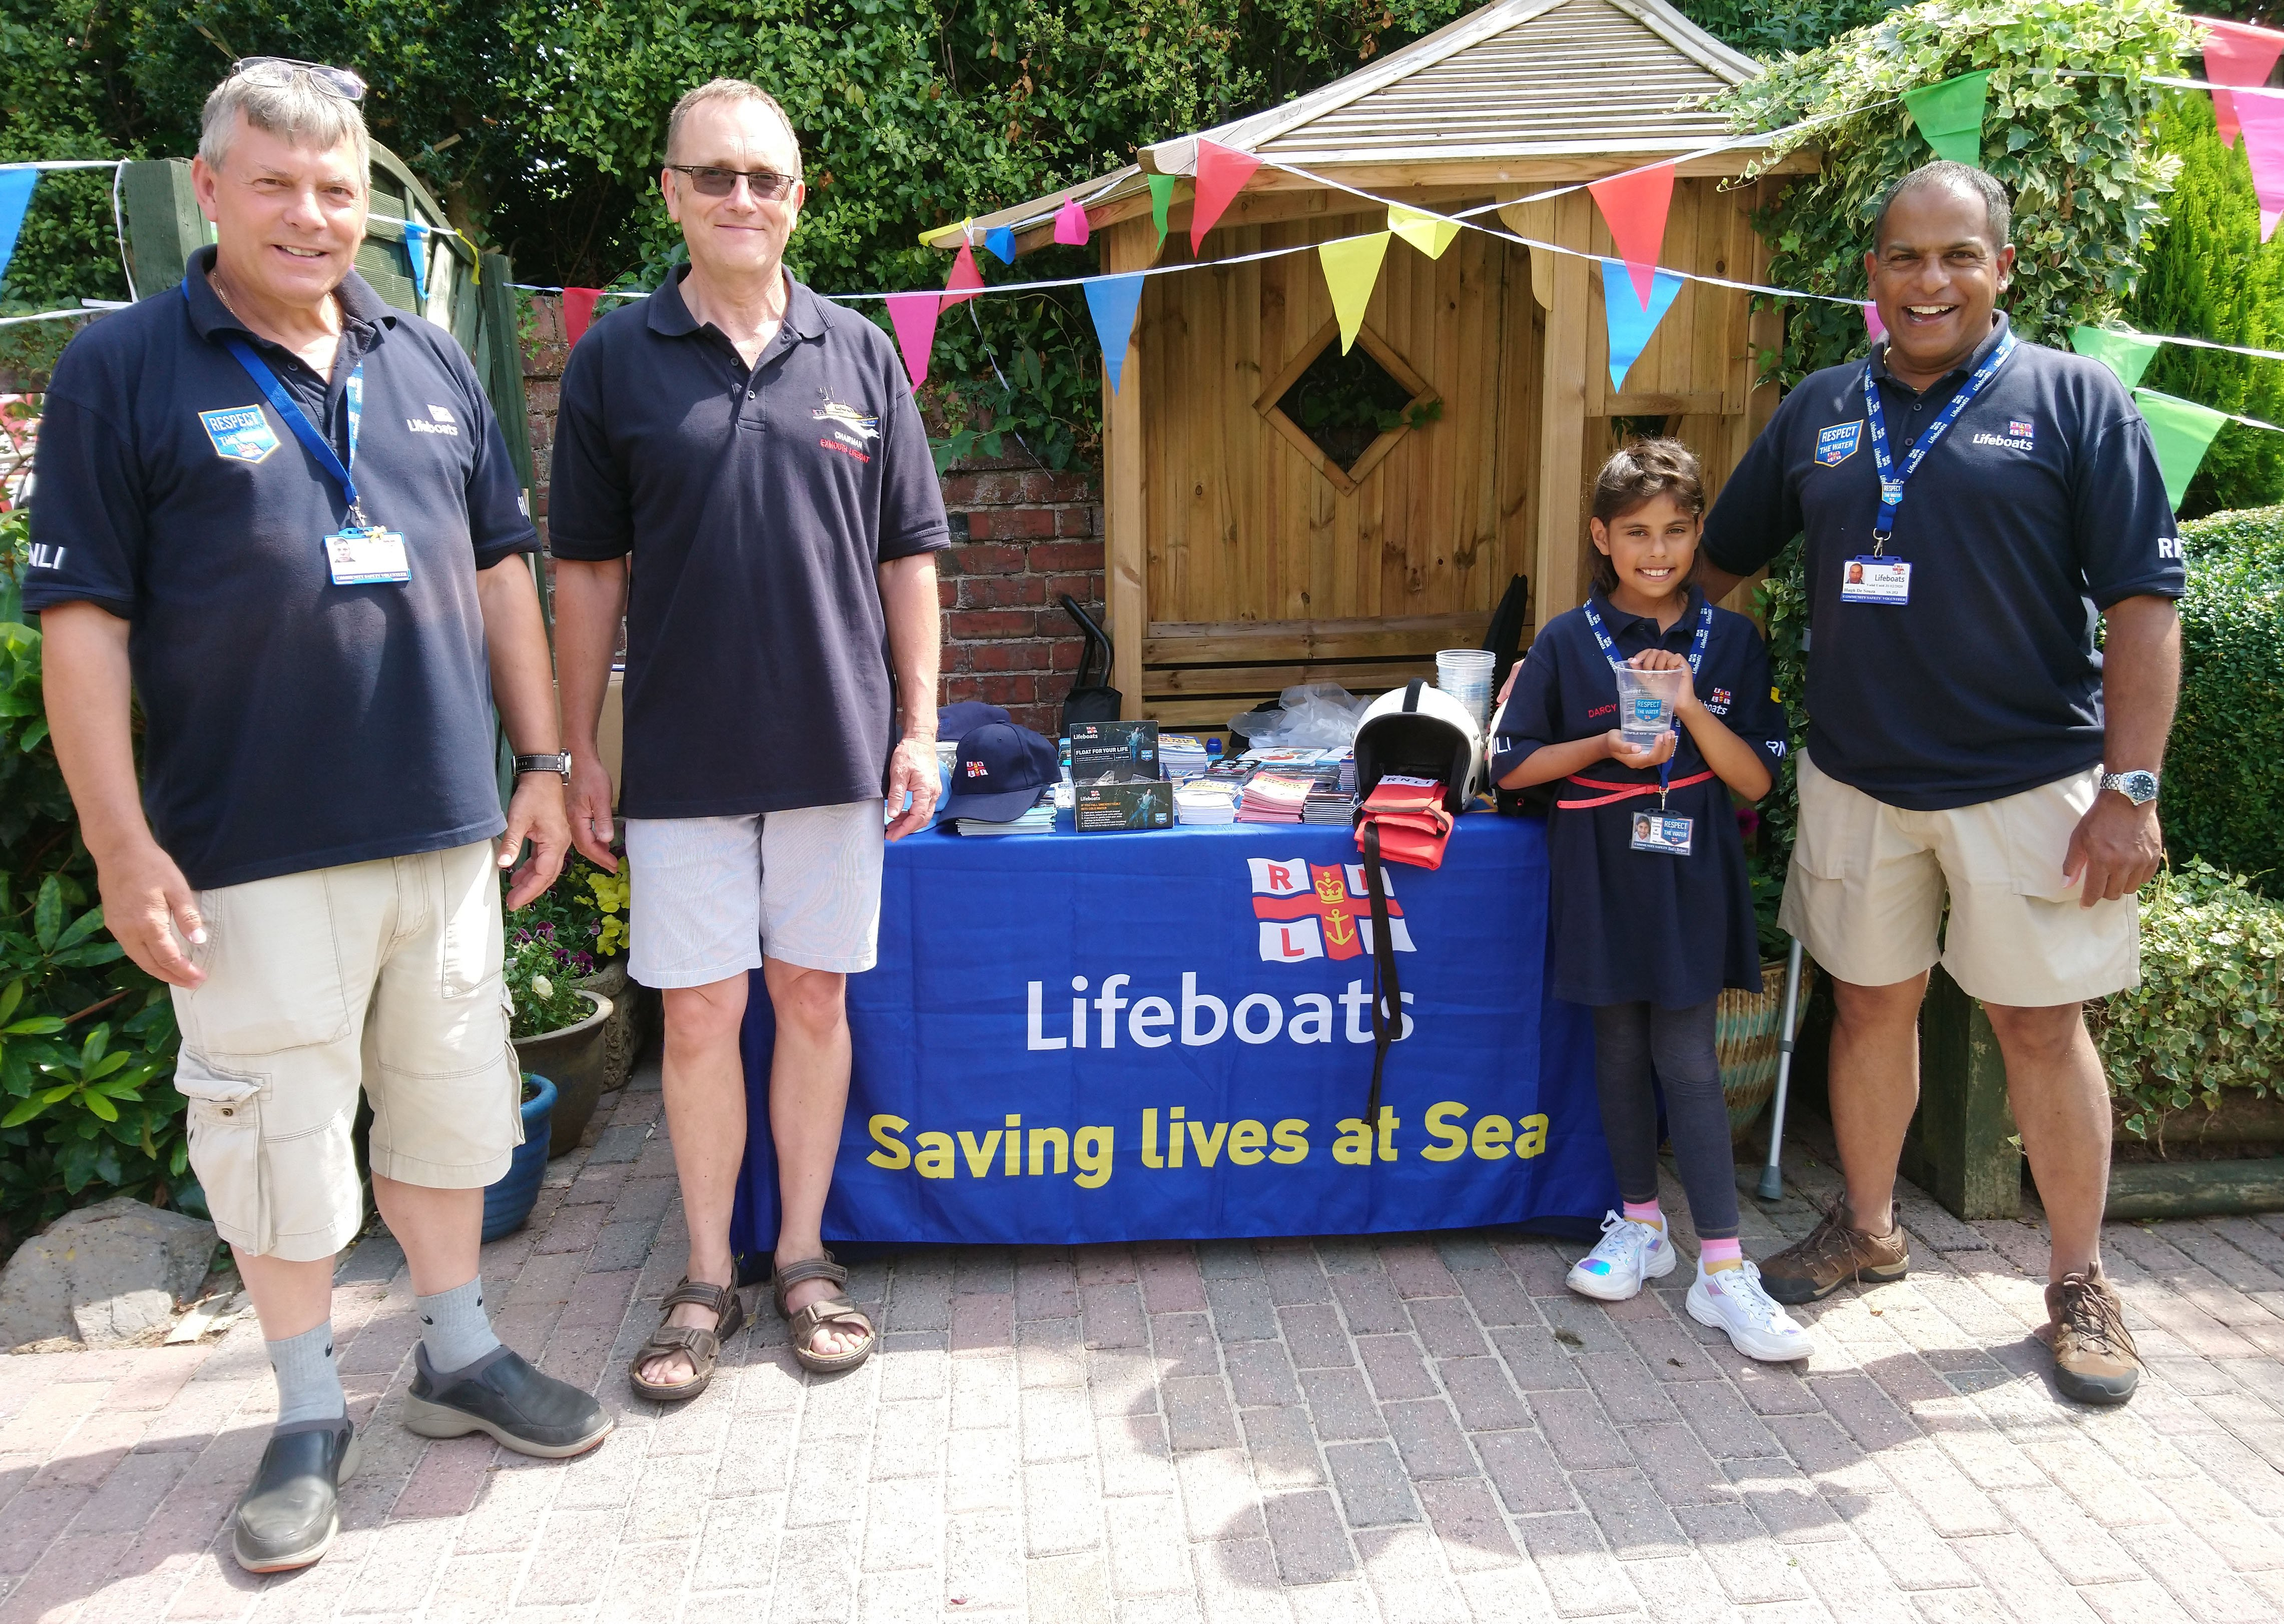 The volunteer RNLI community safety team at the garden party. Picture: Exmouth RNLI